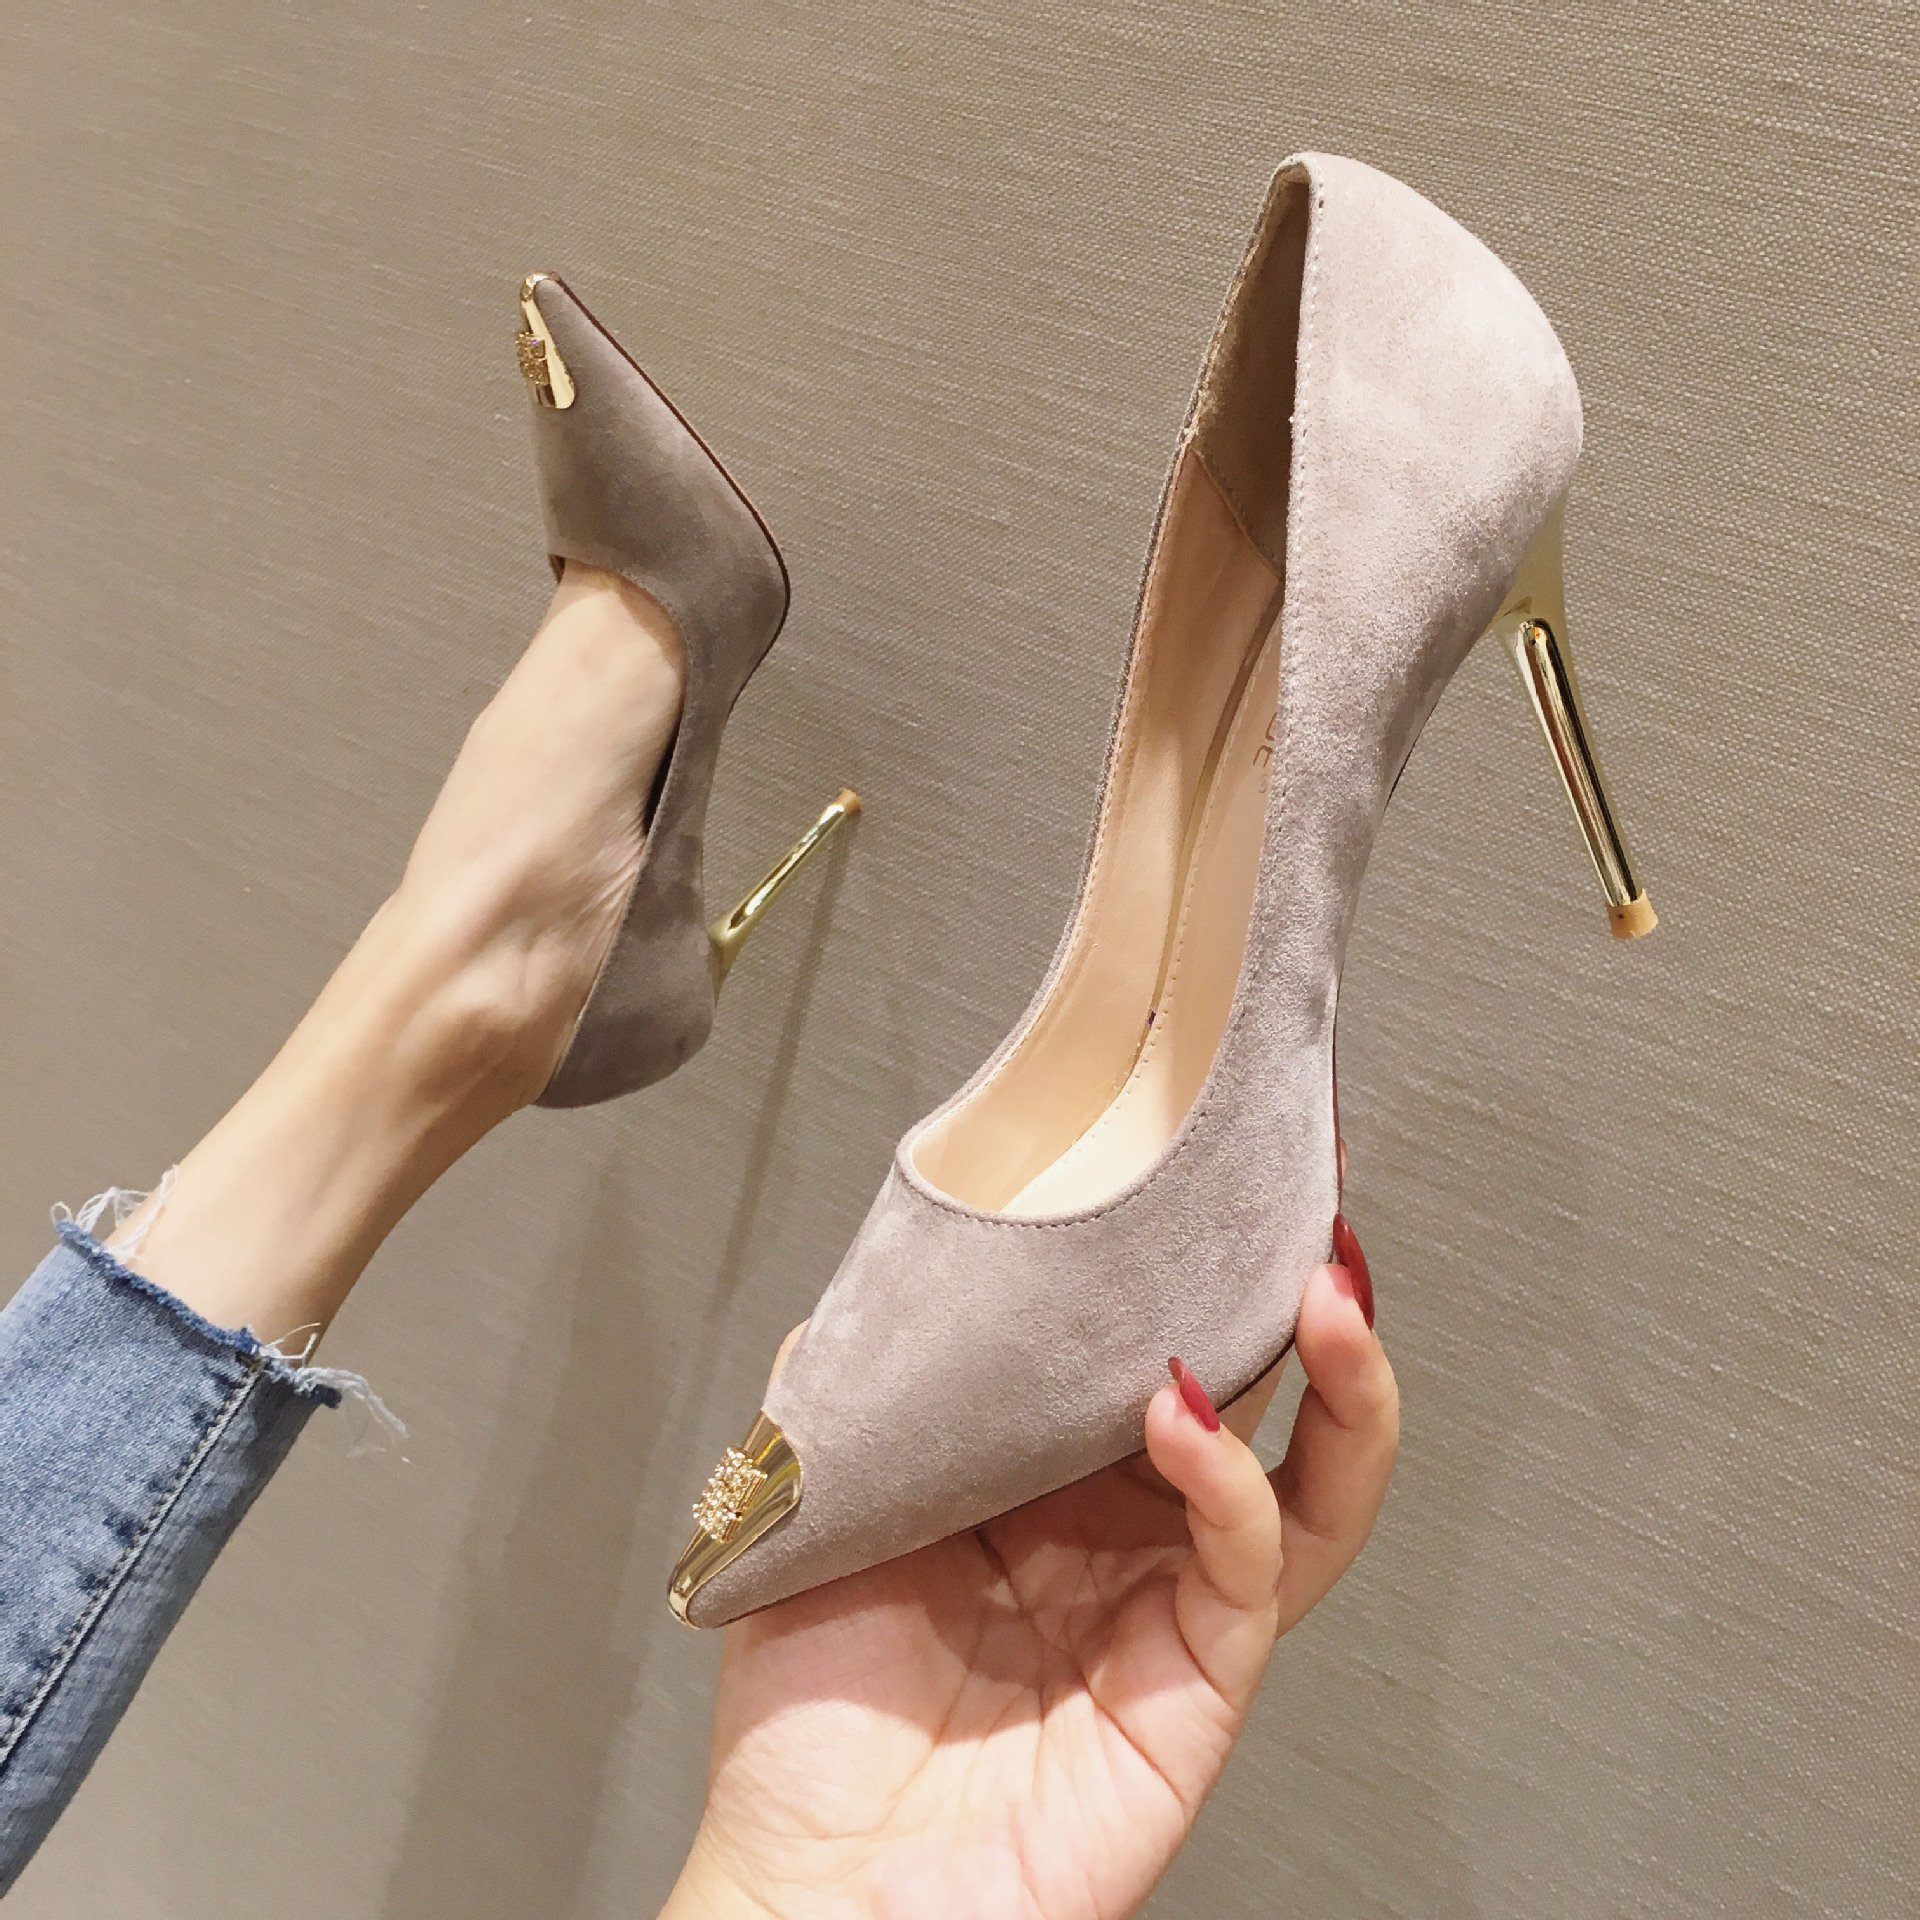 Trendy Women High Heels Top Shoe Brands Closed High Heels Heeled Loafers Kids Tennis Shoes Slingback Kitten Heels Clearance Shoes